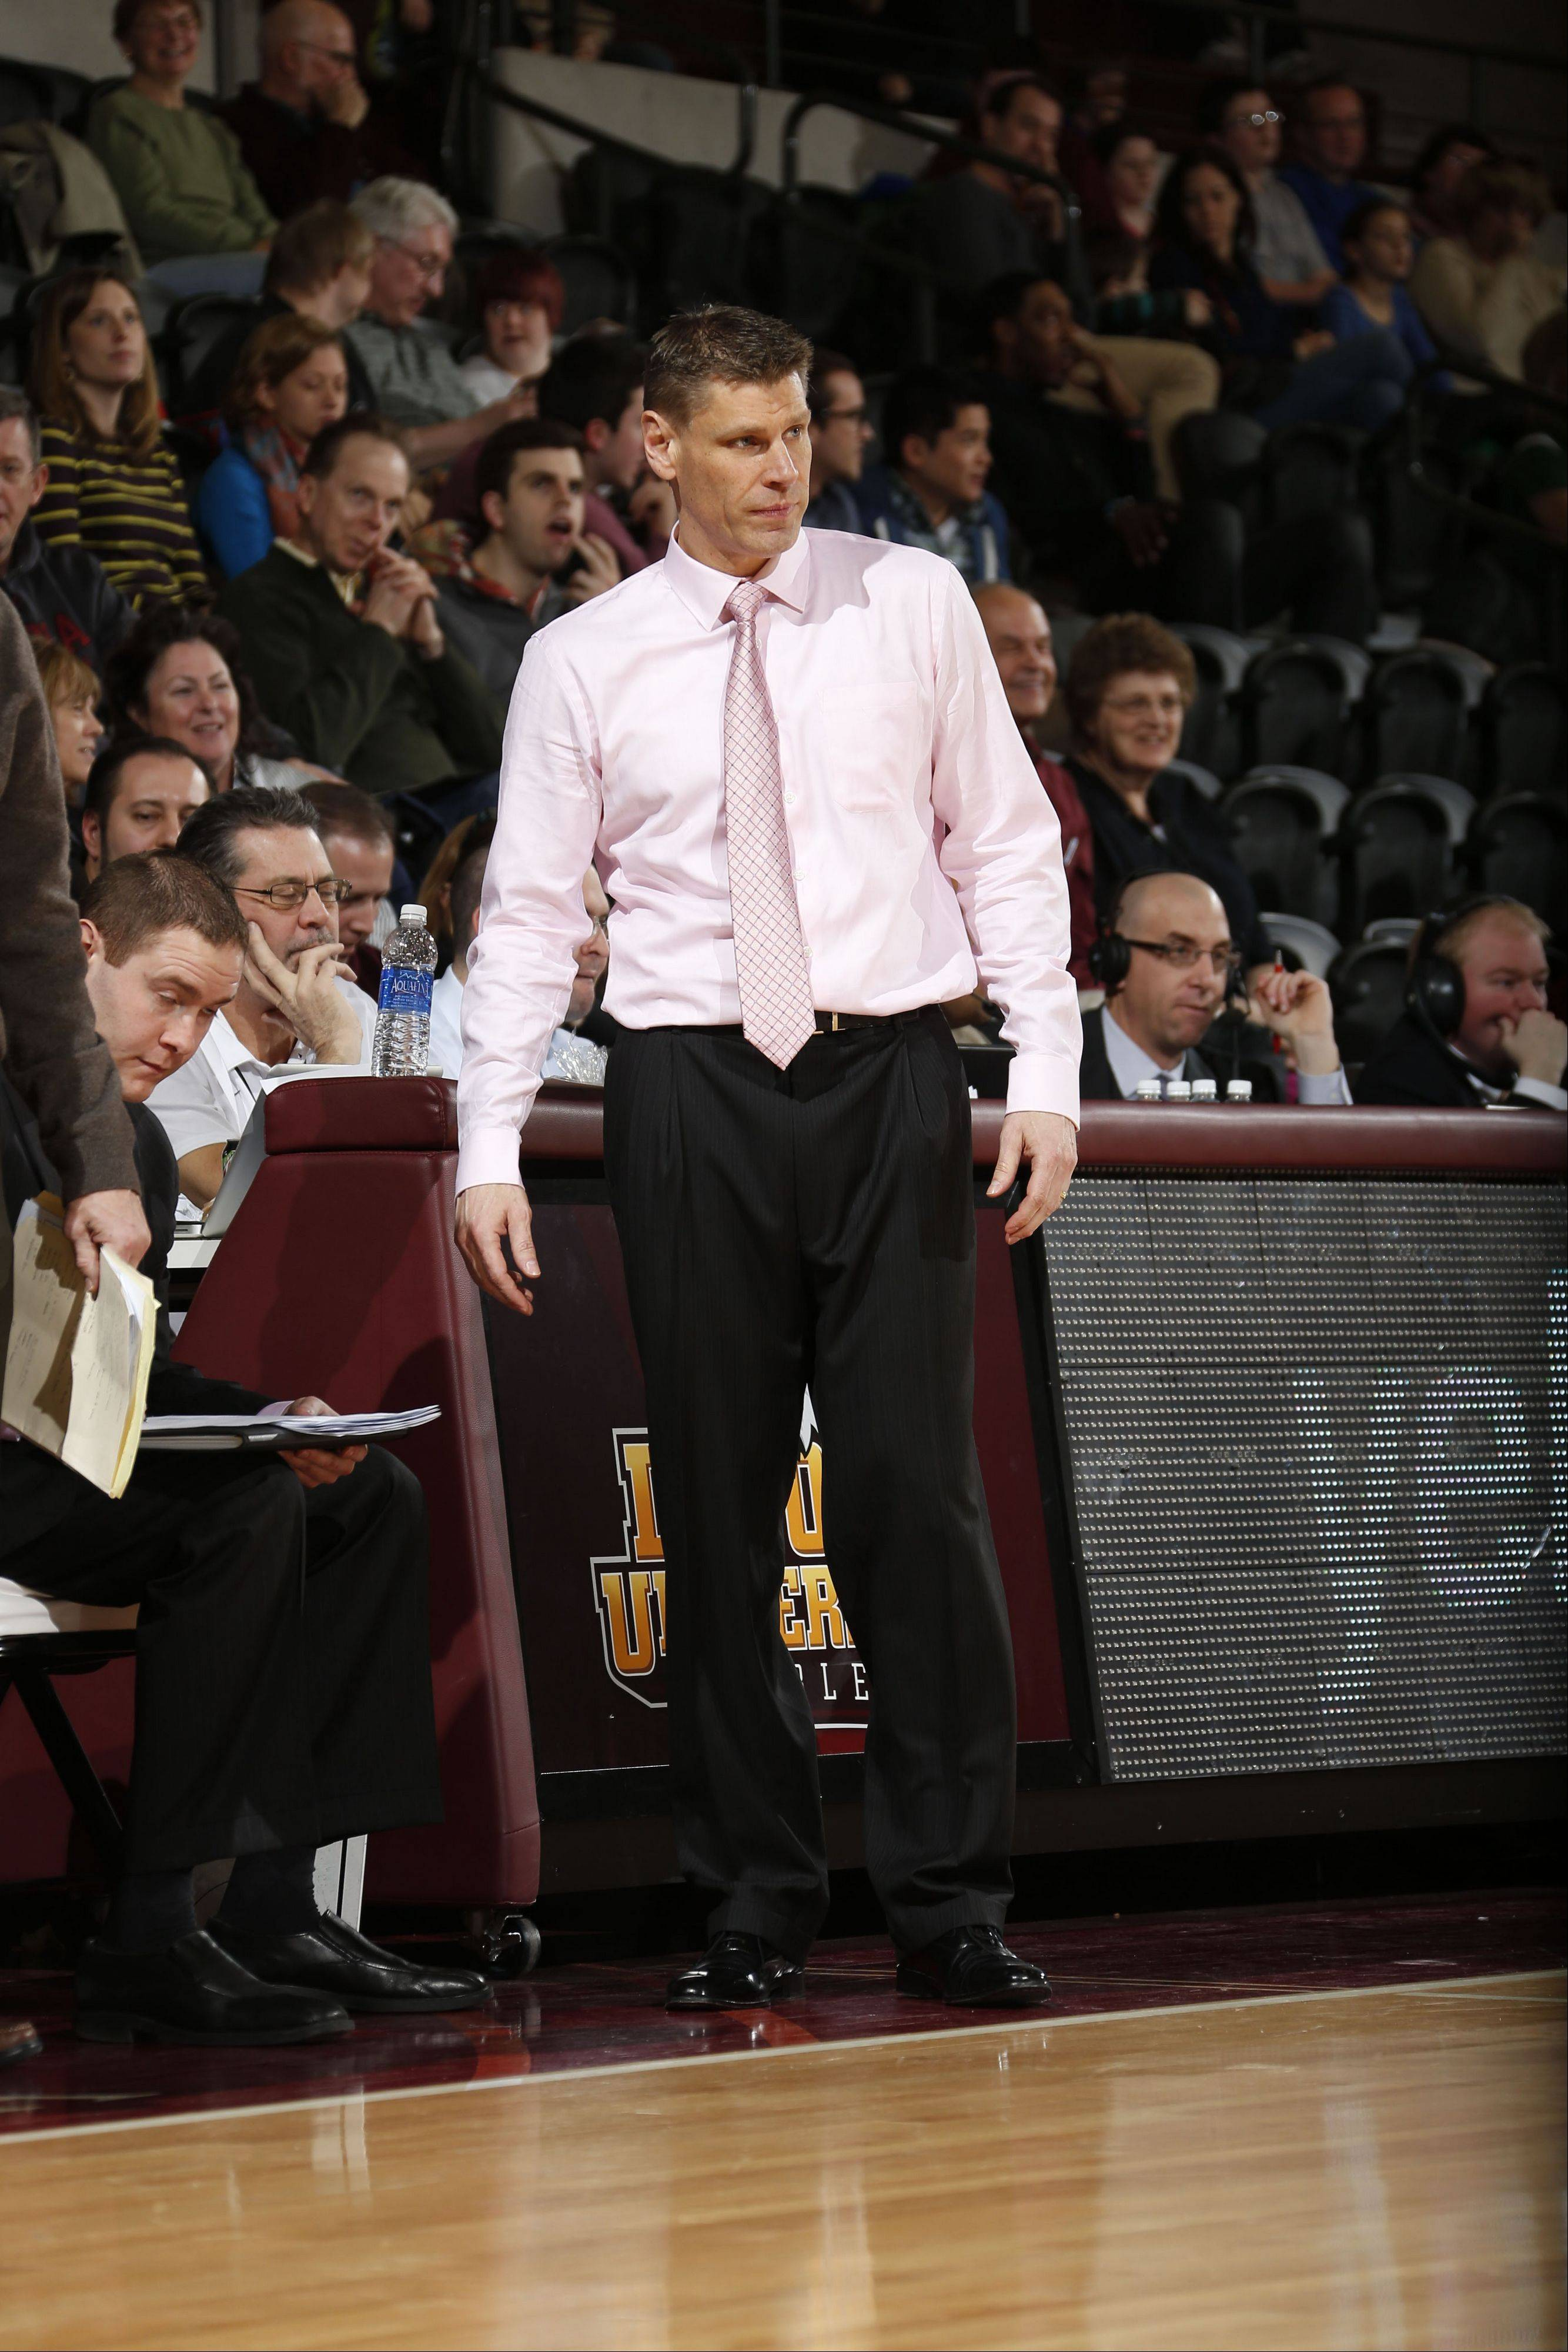 Loyola Ramblers men's basketball coach Porter Moser, who directed his team to 15 wins last season, has agreed to a contract extension with the university.